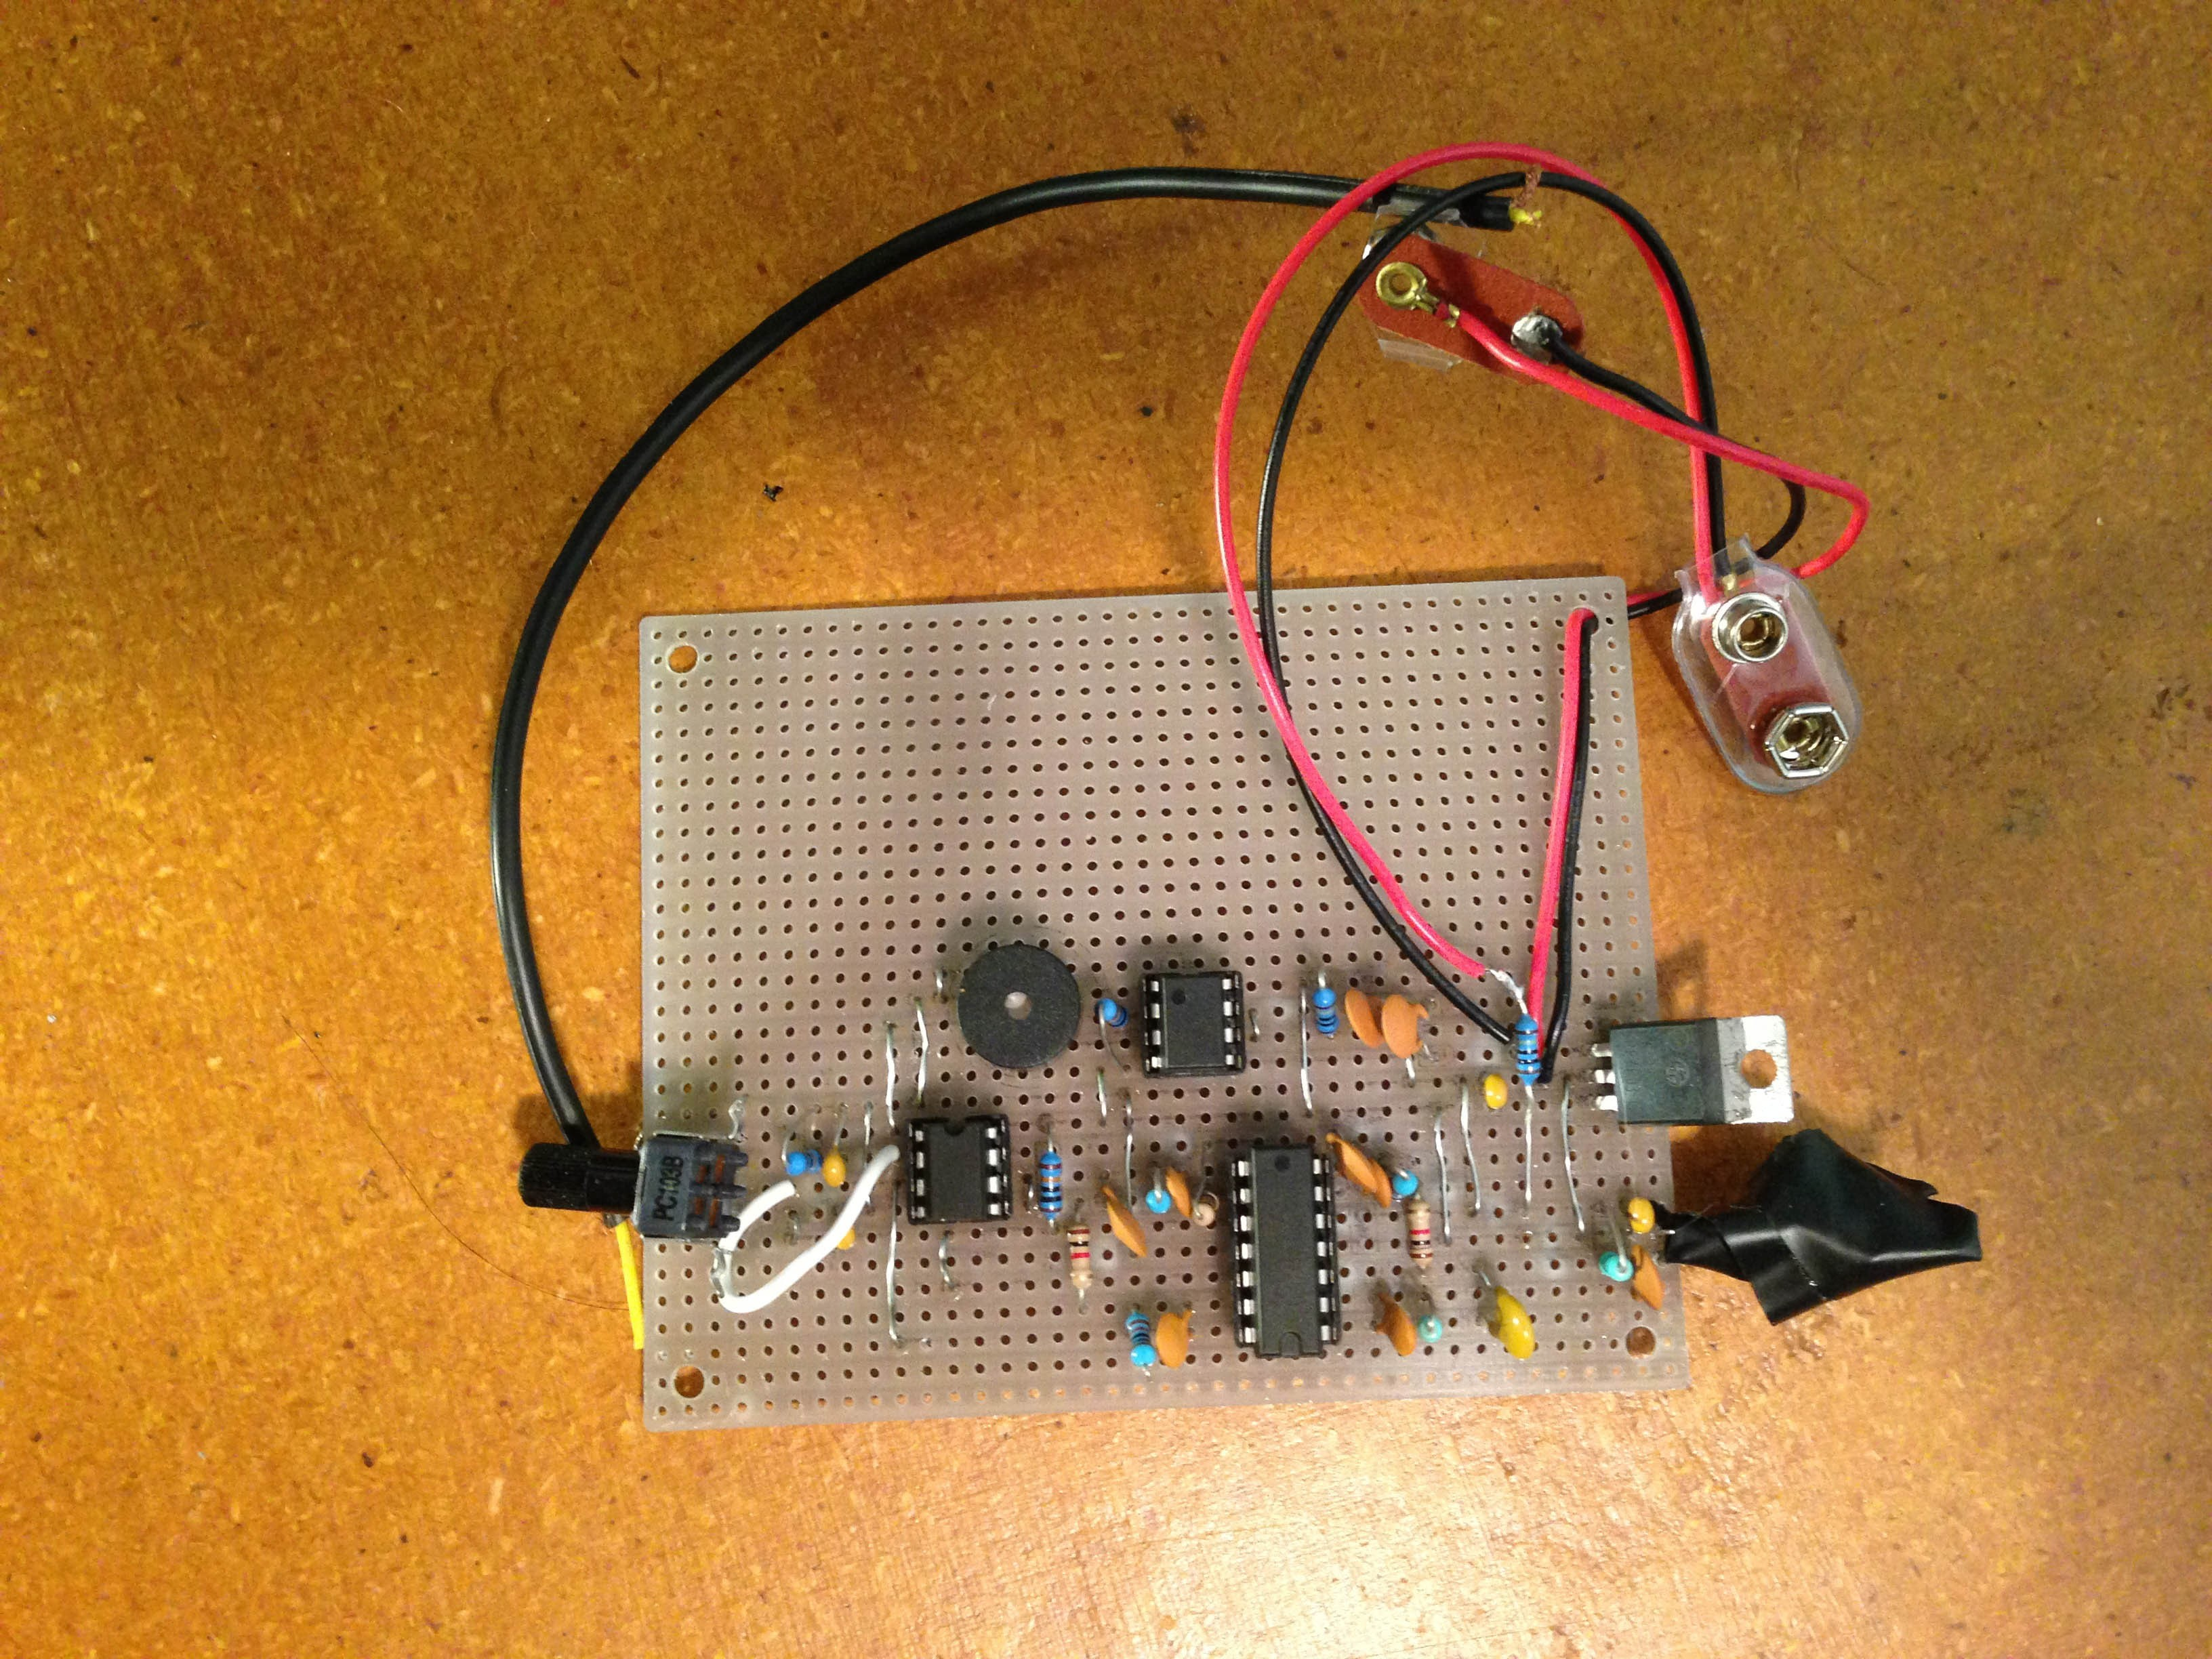 Low Cost Solid State Cosmic Ray Observatory Circuit Project Simple Lightning Detector However Im Ordering A New Op Amp Which Should Get The Working And Beeping